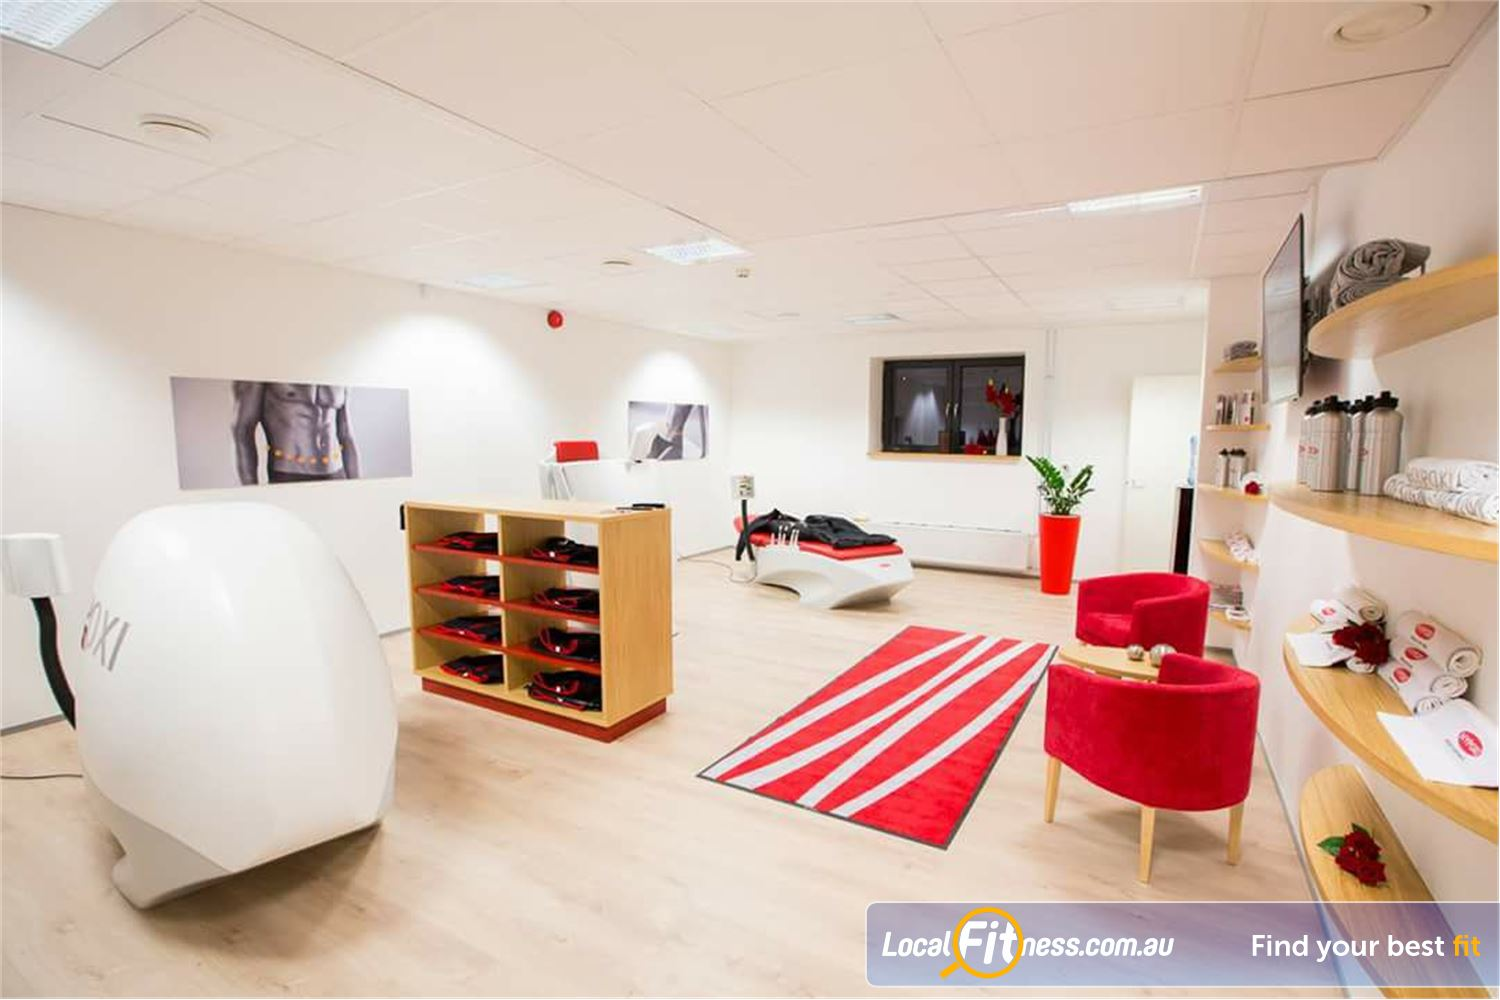 HYPOXI Weight Loss Madeley The HYPOXI Kingsway weight-loss studio is dedicated to helping you lose stubborn fat.